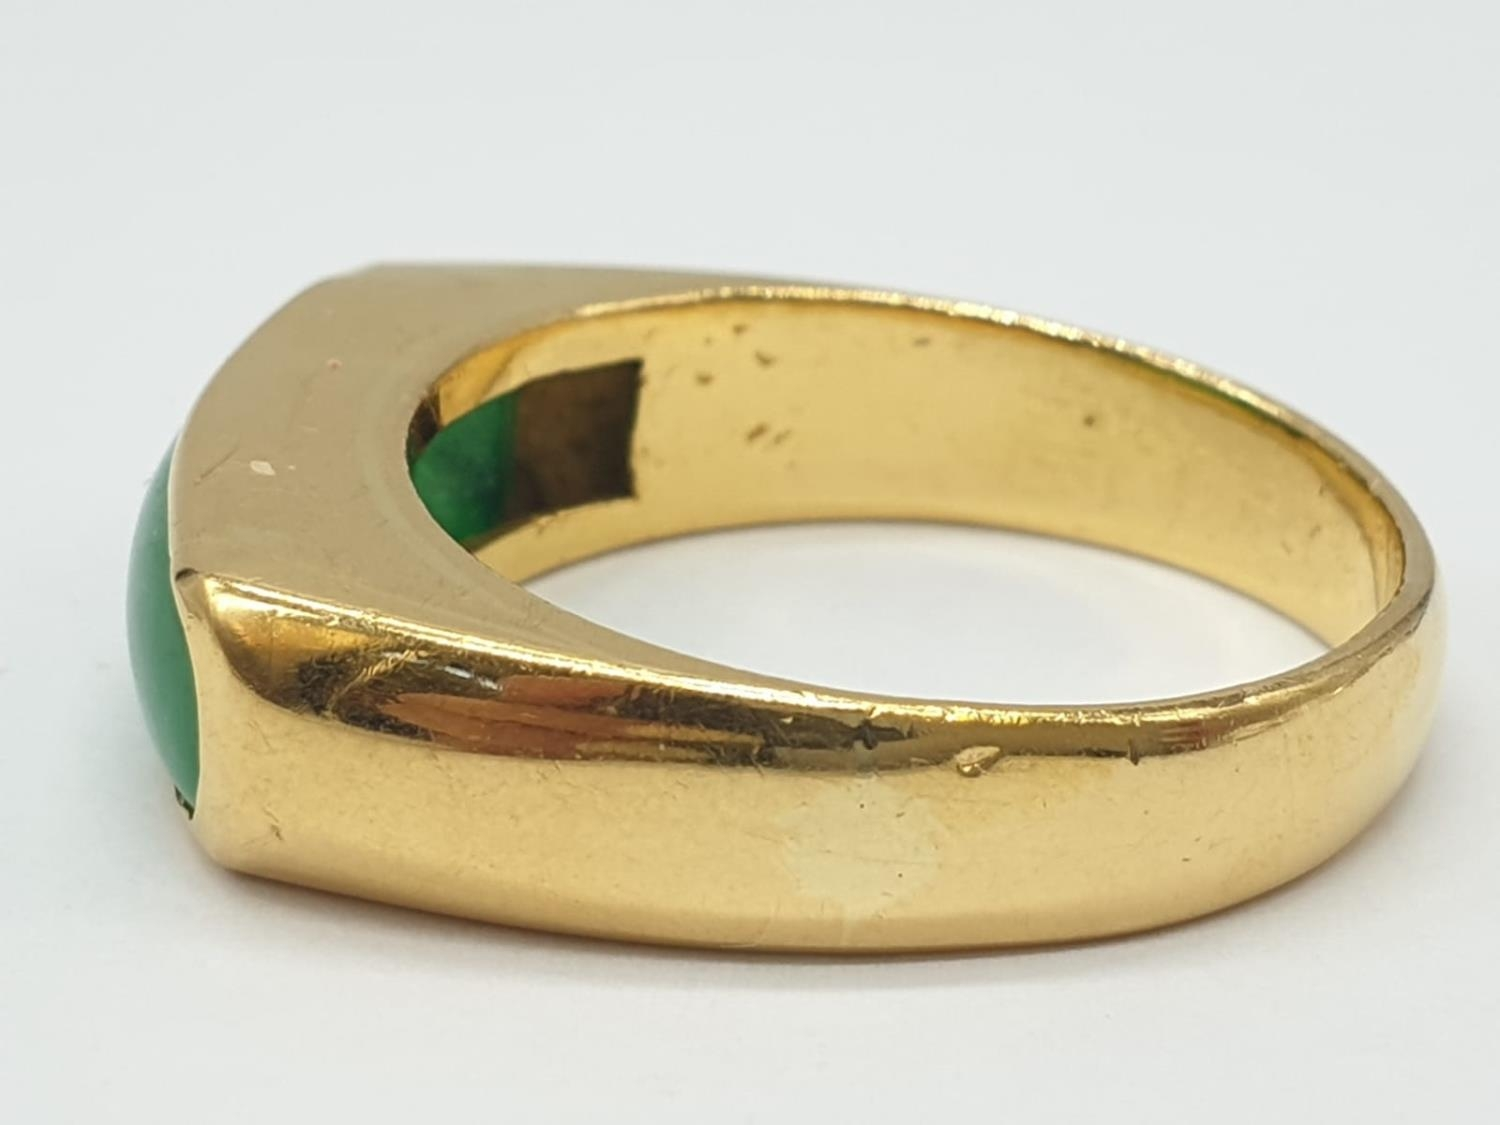 22ct gold ring with natural jade stone. 7.7g in weight and size T. - Image 3 of 7